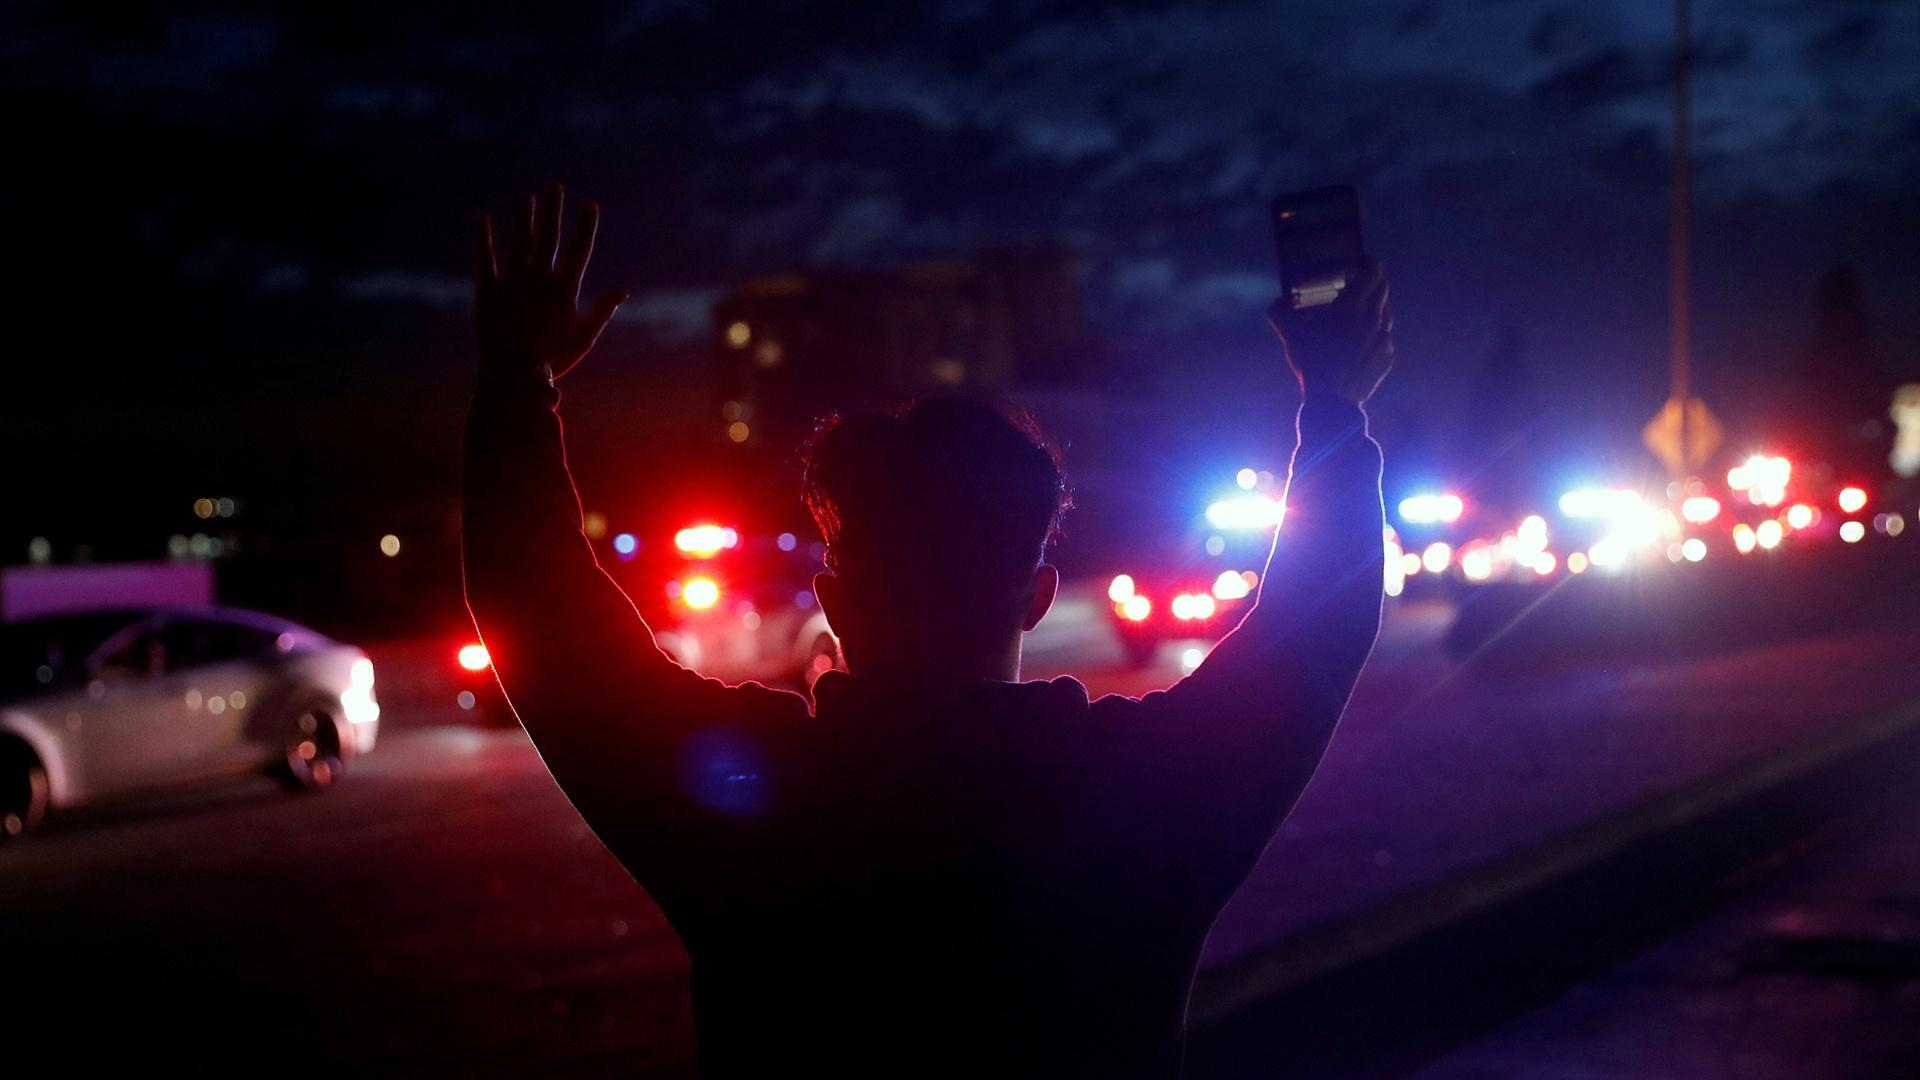 Person with back to camera and hands up in surrender, with police cars in background at nighttime